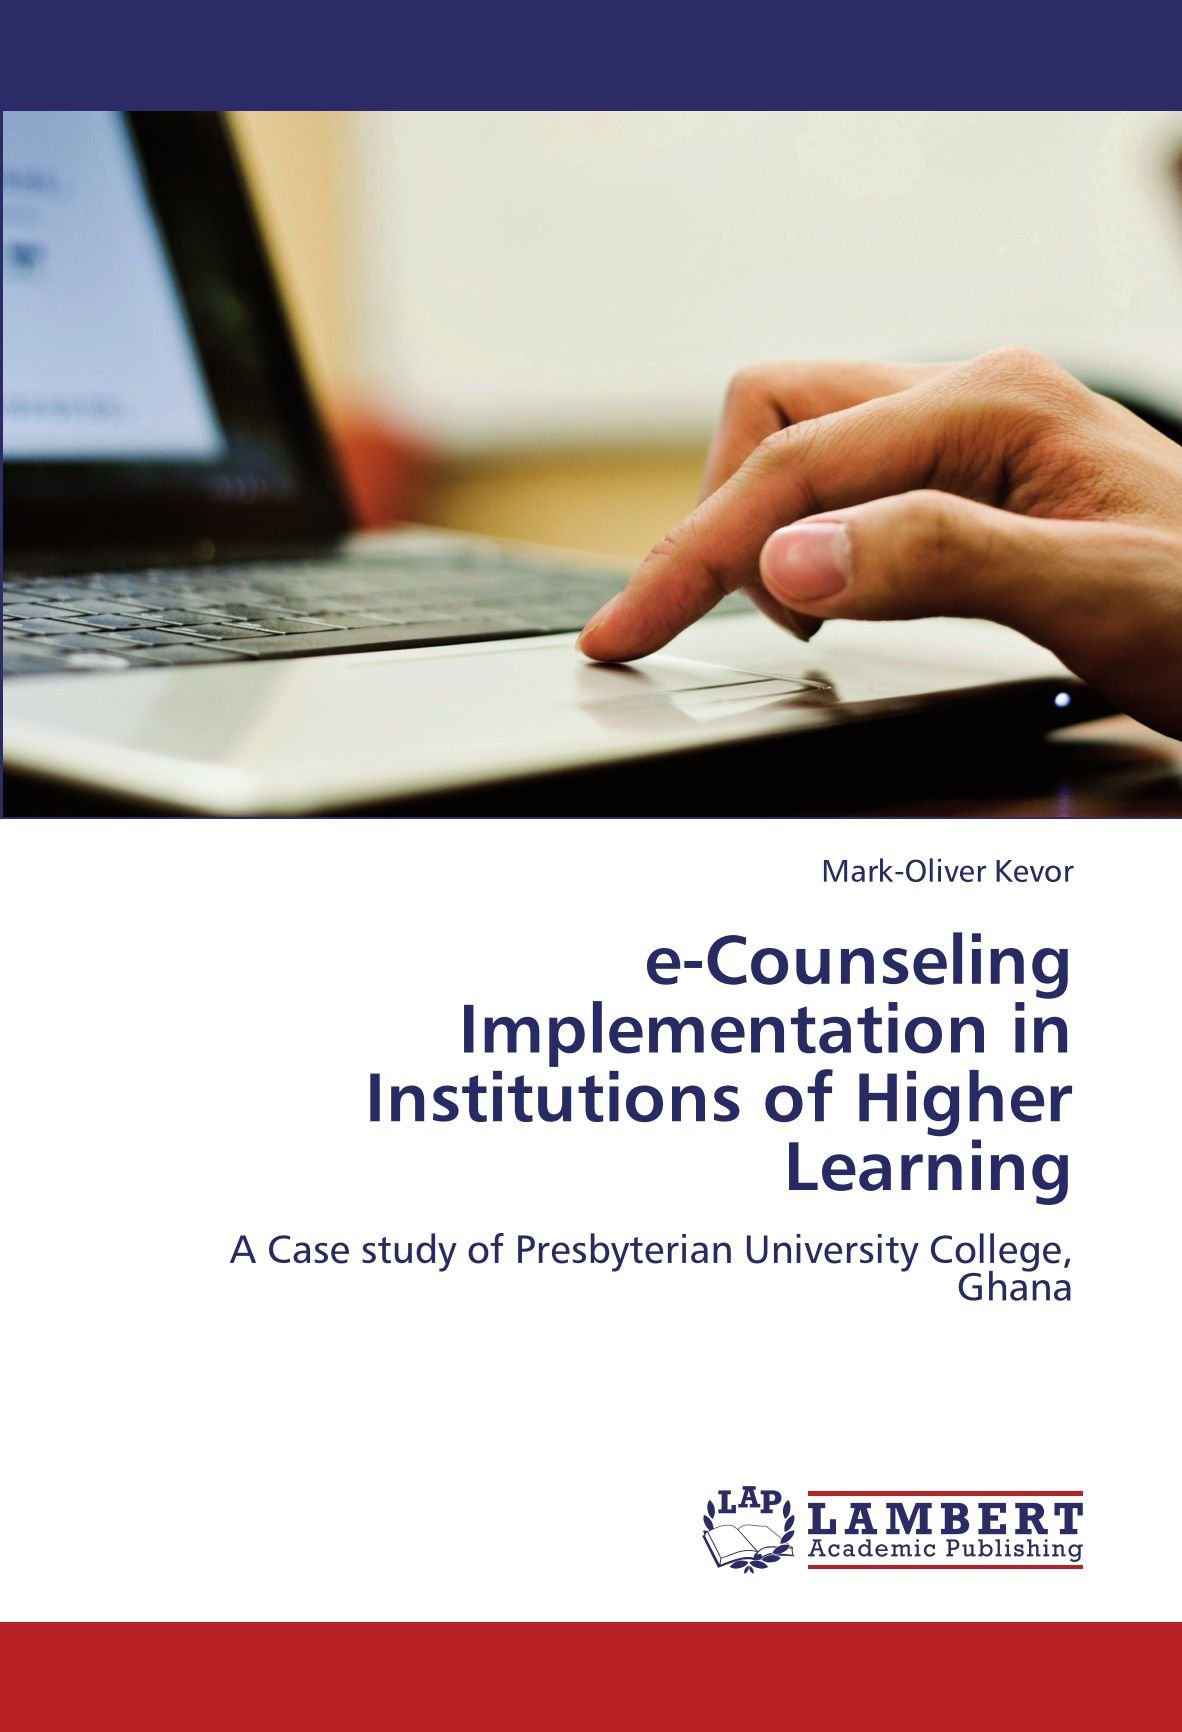 e-Counseling Implementation in Institutions of Higher Learning: A Case study of Presbyterian University College, Ghana PDF